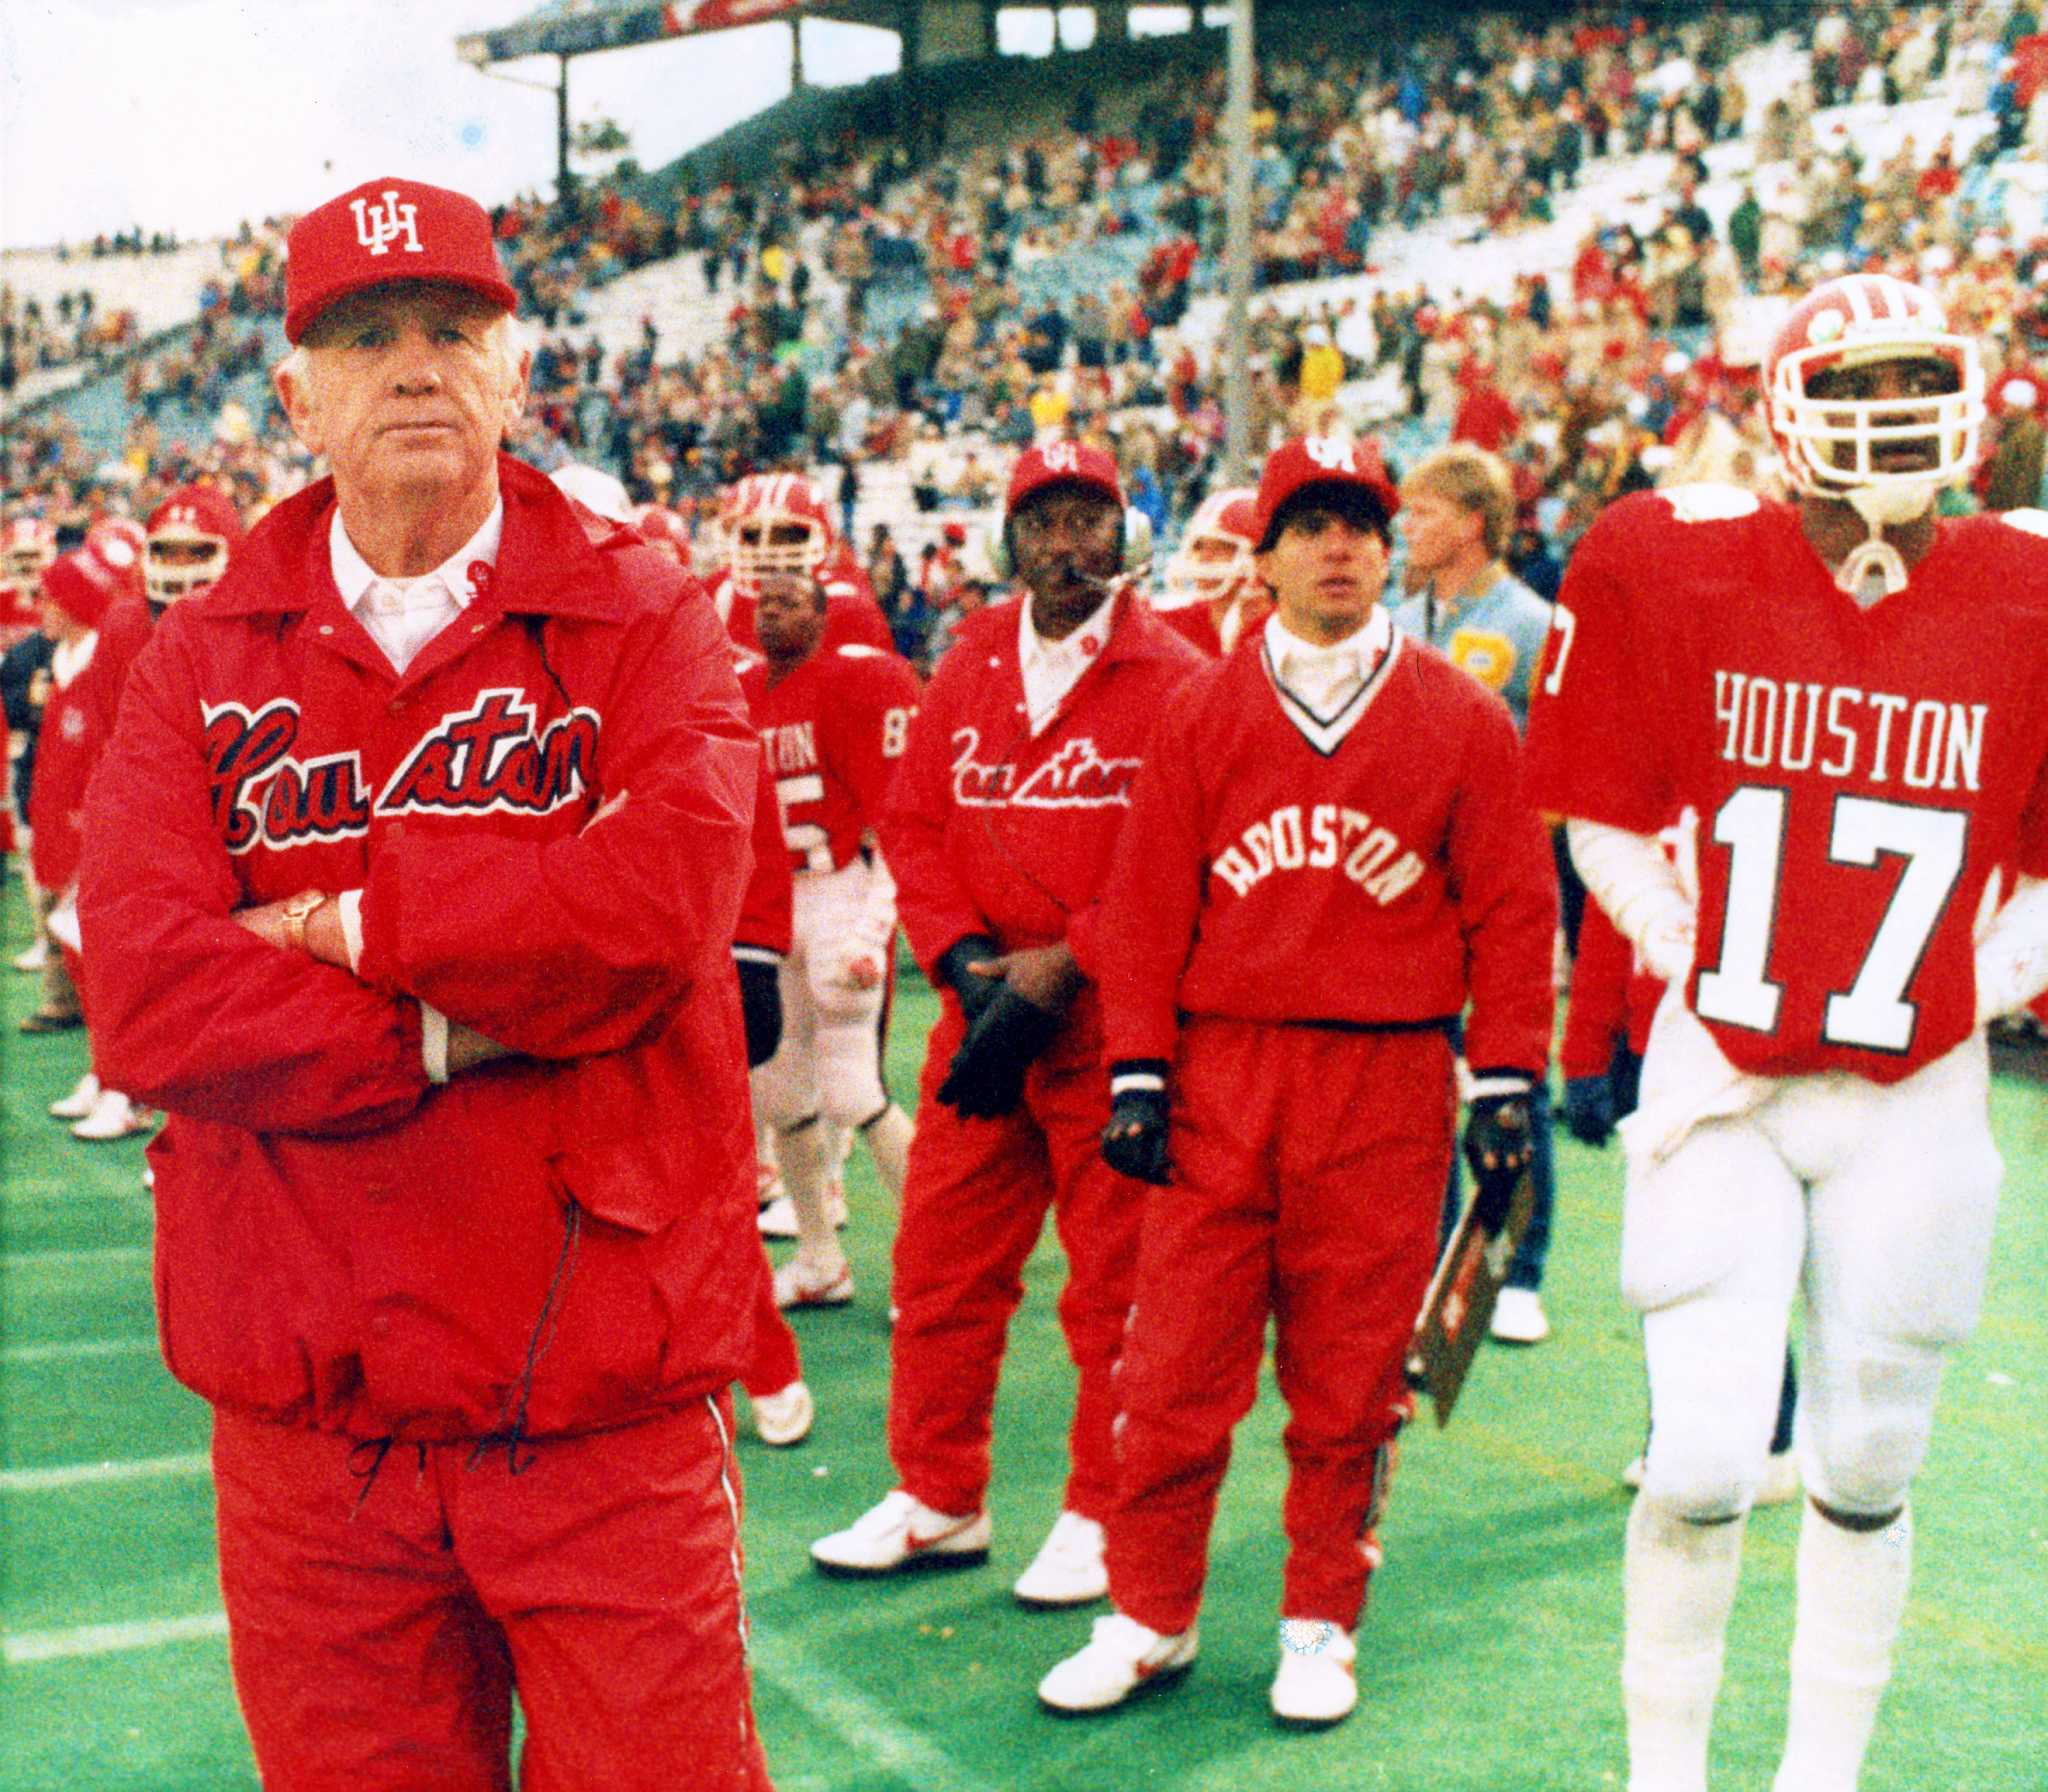 Legendary UH football coach Bill Yeoman recovering after hospital stay